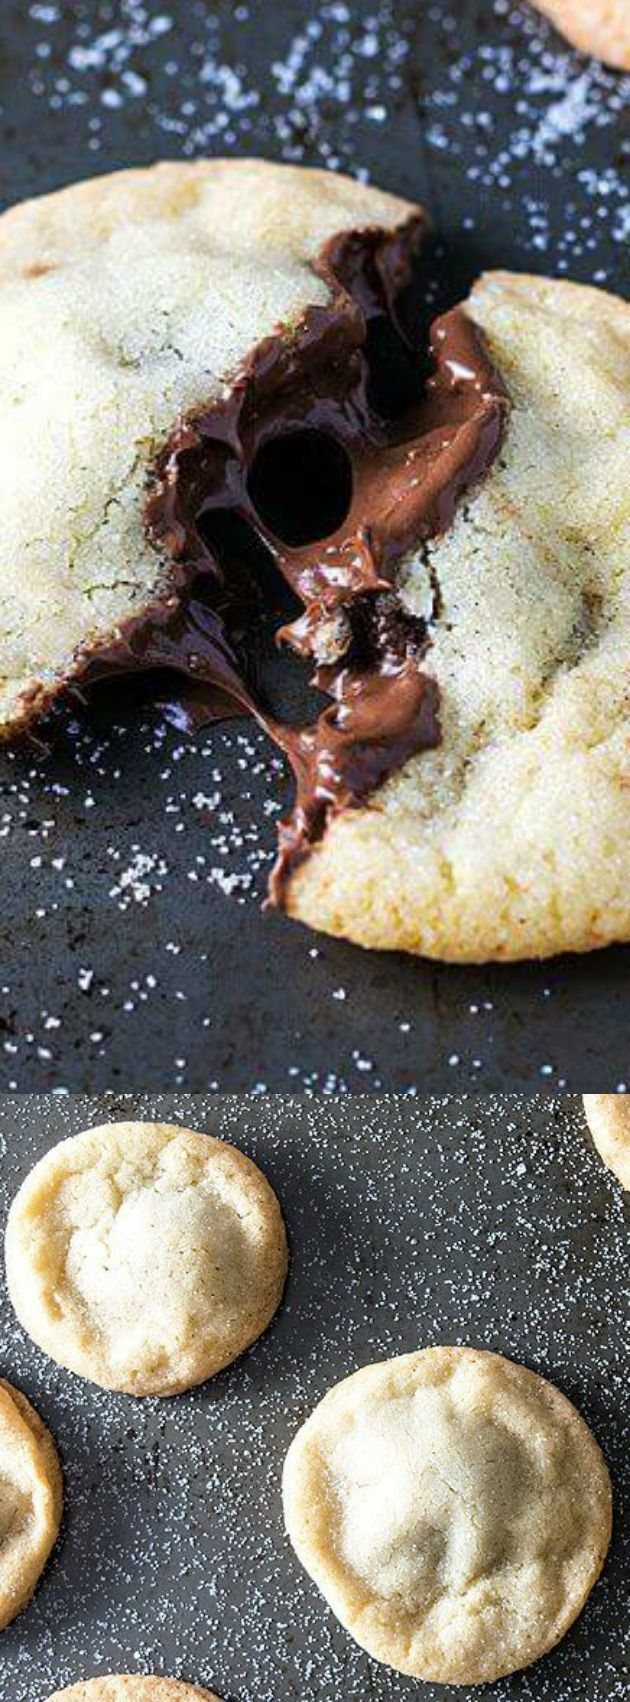 These Nutella Stuffed Sugar Cookies from Homemade Hooplah are the perfect choice for a delicious dessert during any occasion! The soft and chewy sugar cookies filled with chocolaty Nutella offer a delicious surprise for anyone who wants to try a bite!